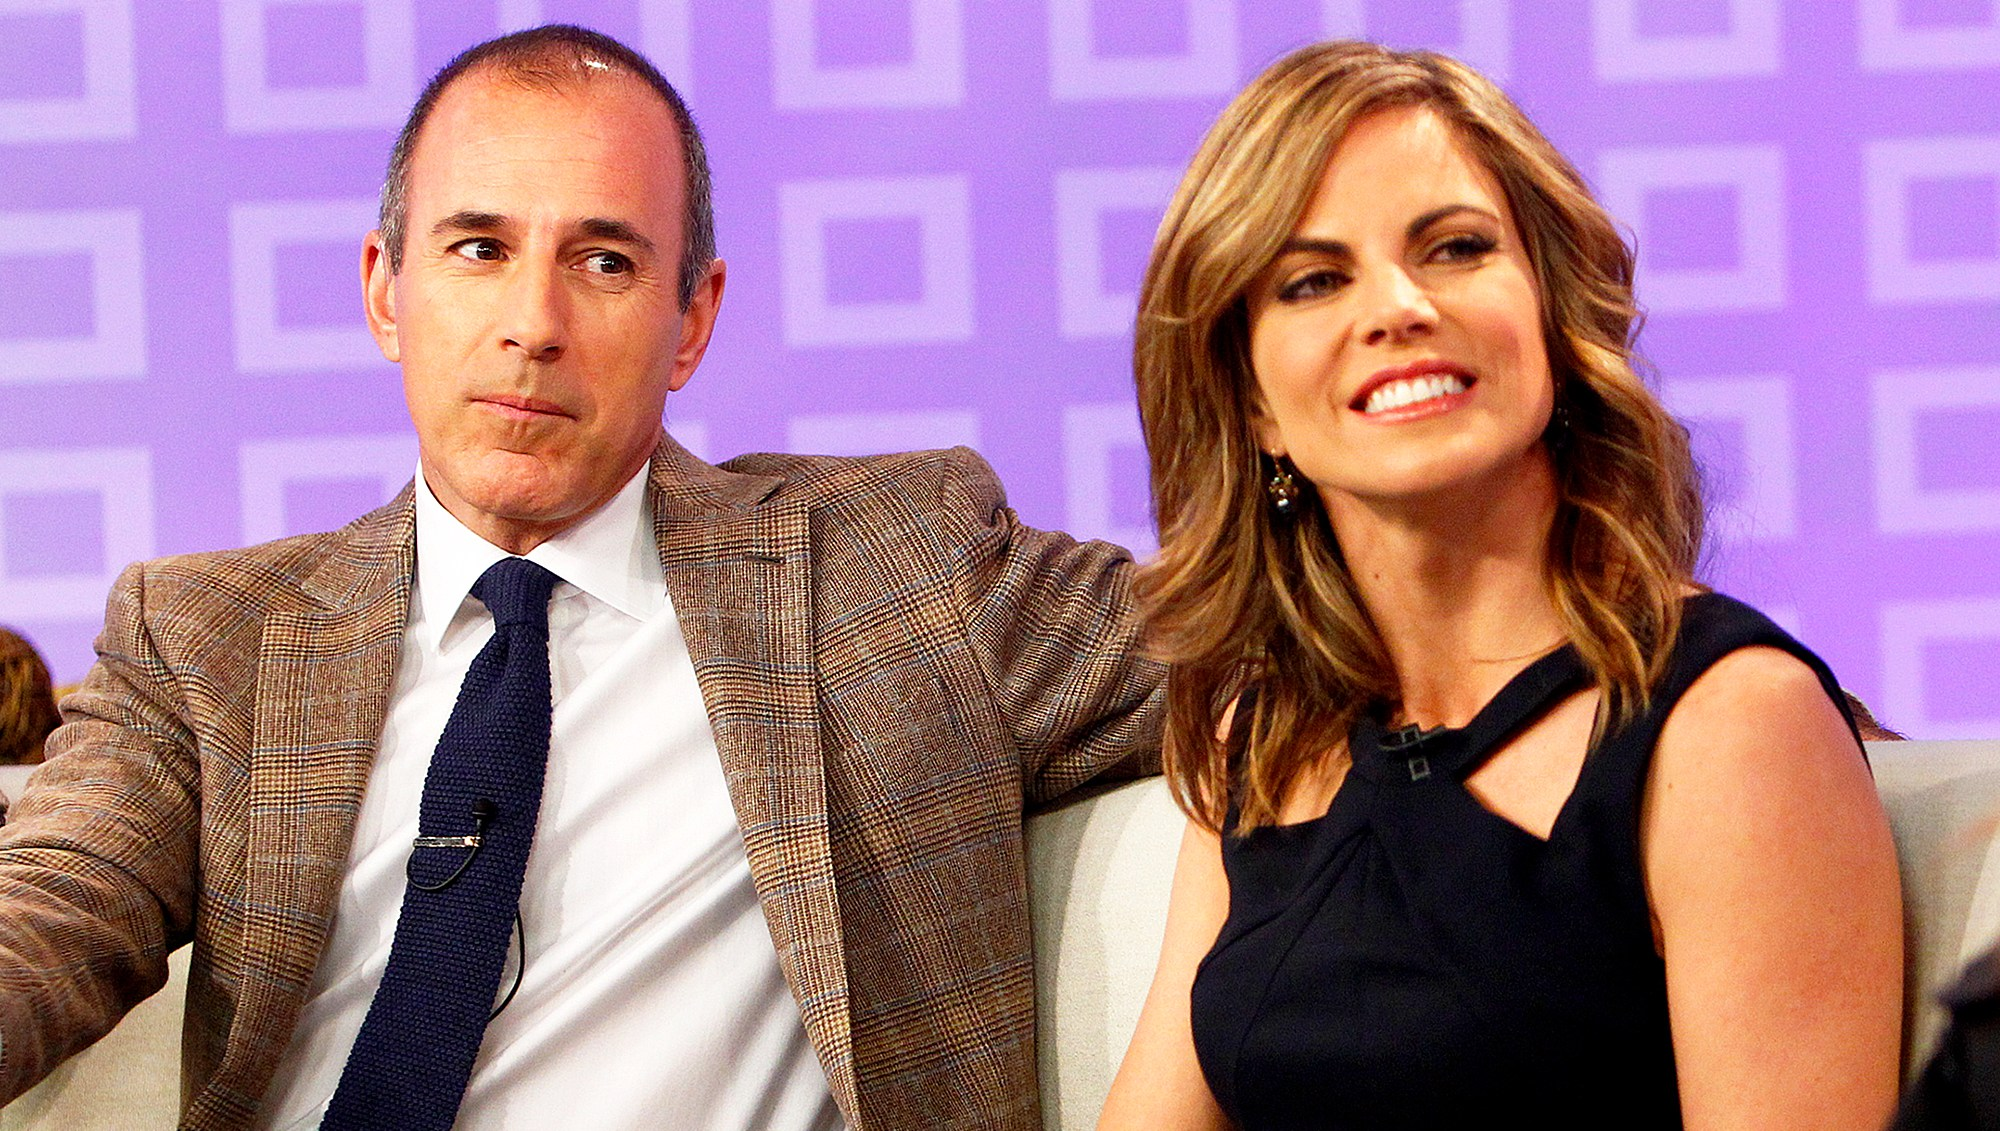 Matt Lauer and Natalie Morales on 'Today' show